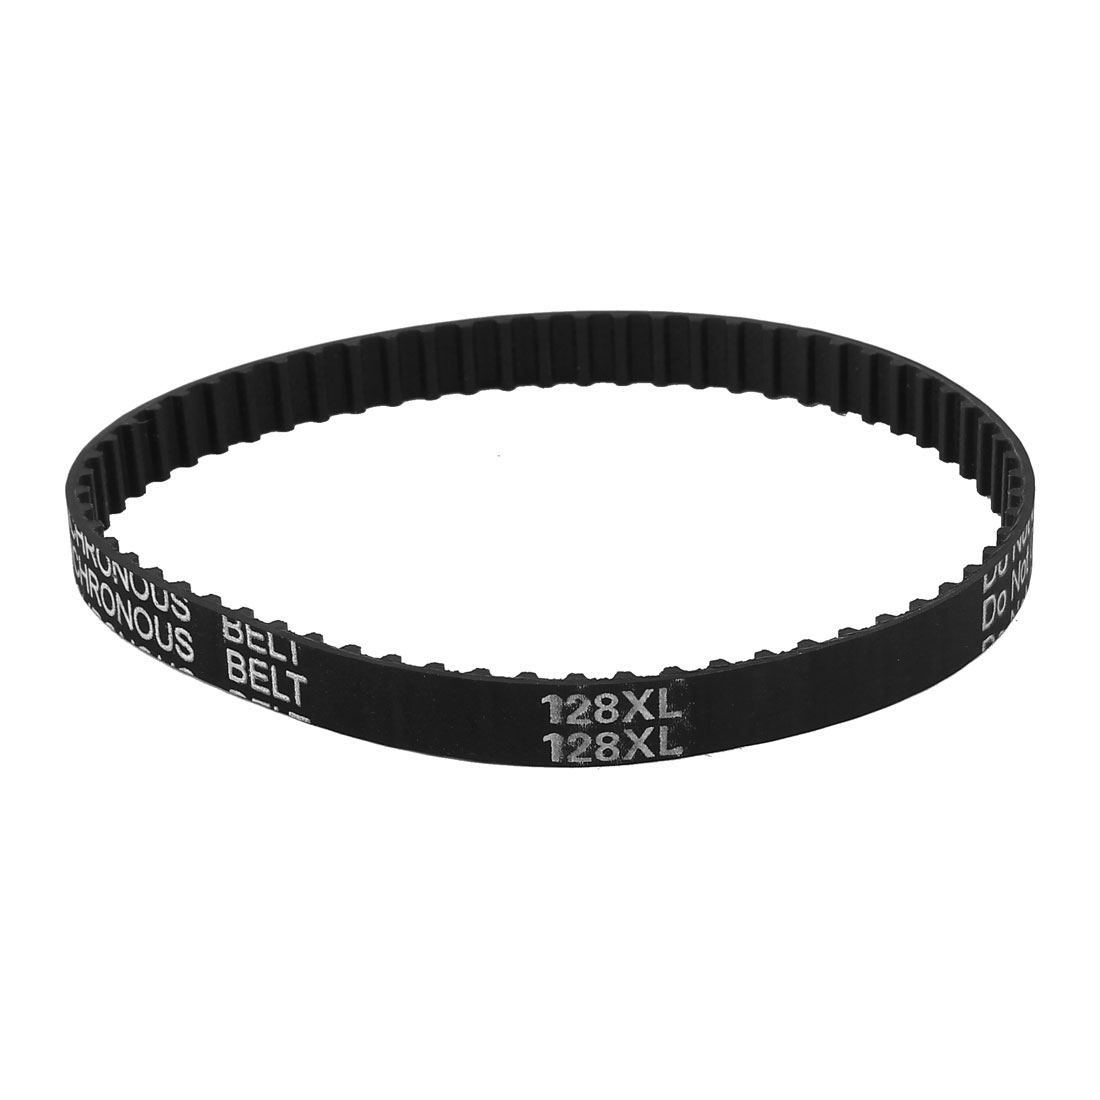 128XL 037 64 Teeth 5.08mm Pitch 9.5mm Width Engine Rubber Timing Belt